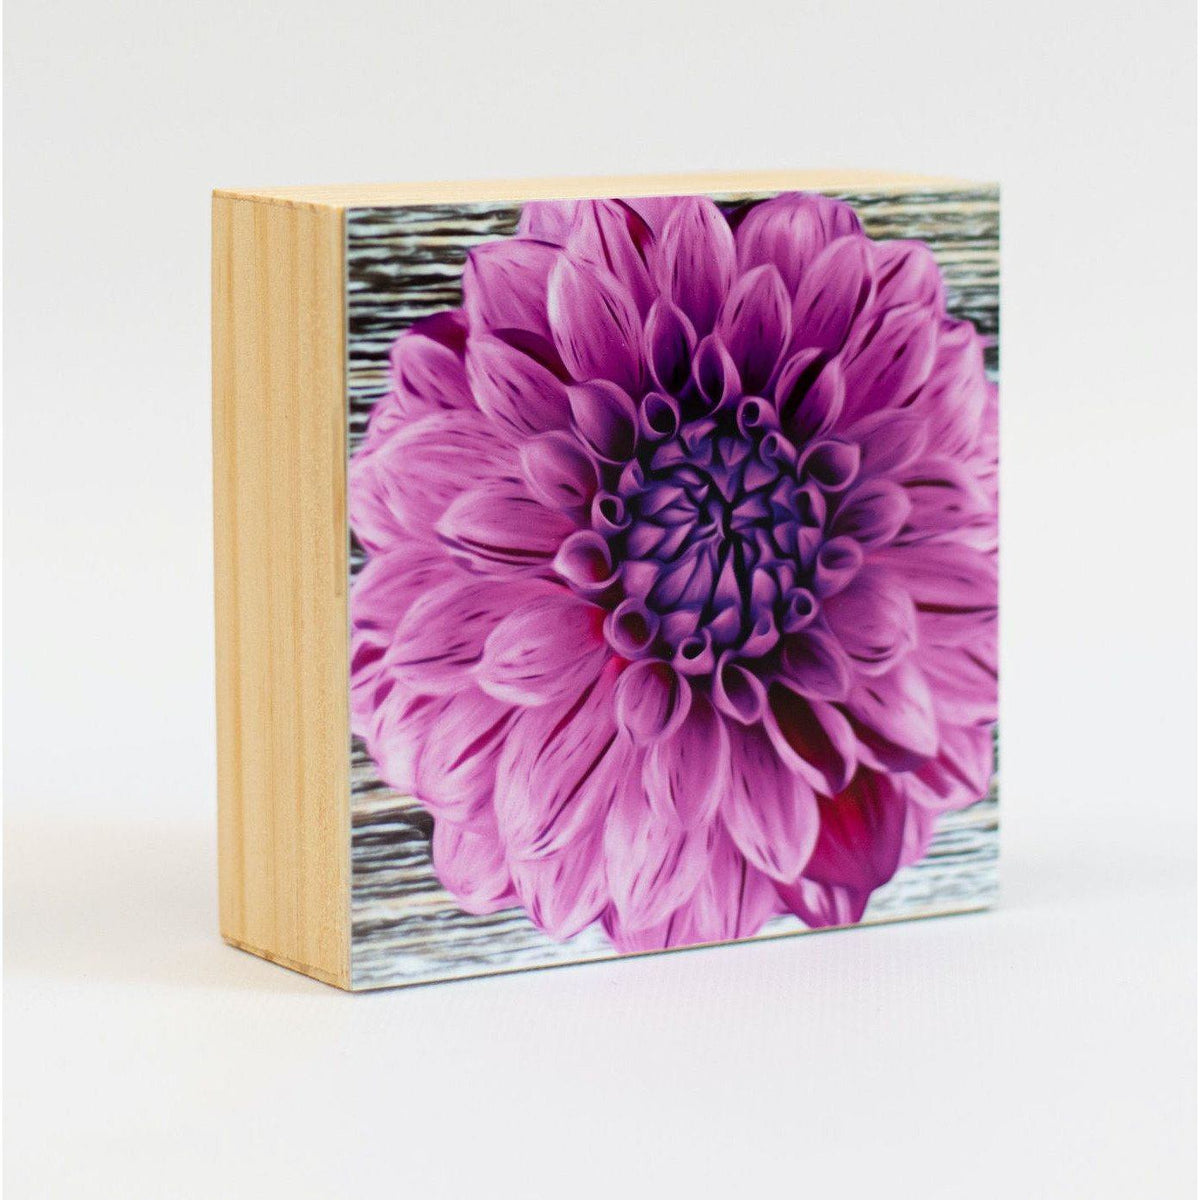 Dahlia Aluminum Photo on Wood Block art print ANVIL metals studio